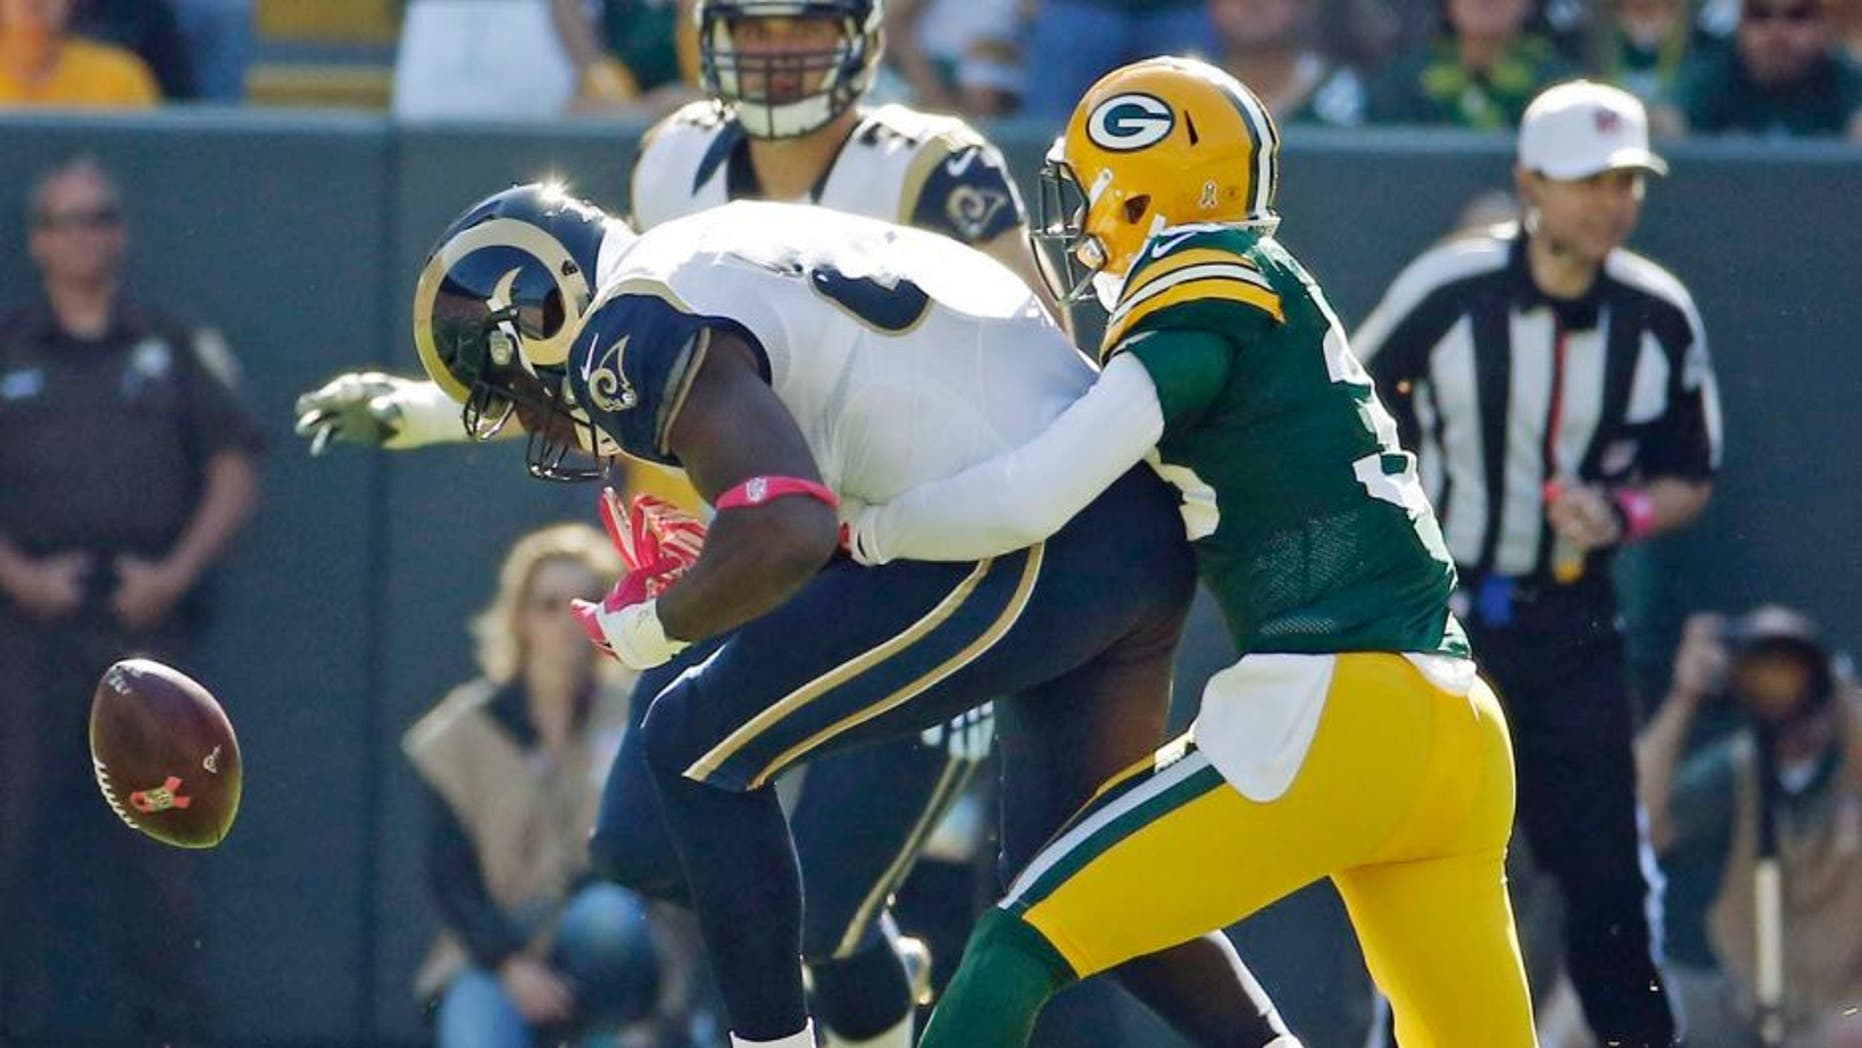 The Green Bay Packers' Micah Hyde breaks up a pass intended for the St. Louis Rams' Jared Cook during the first half Sunday, Oct. 11, 2015, in Green Bay, Wis.